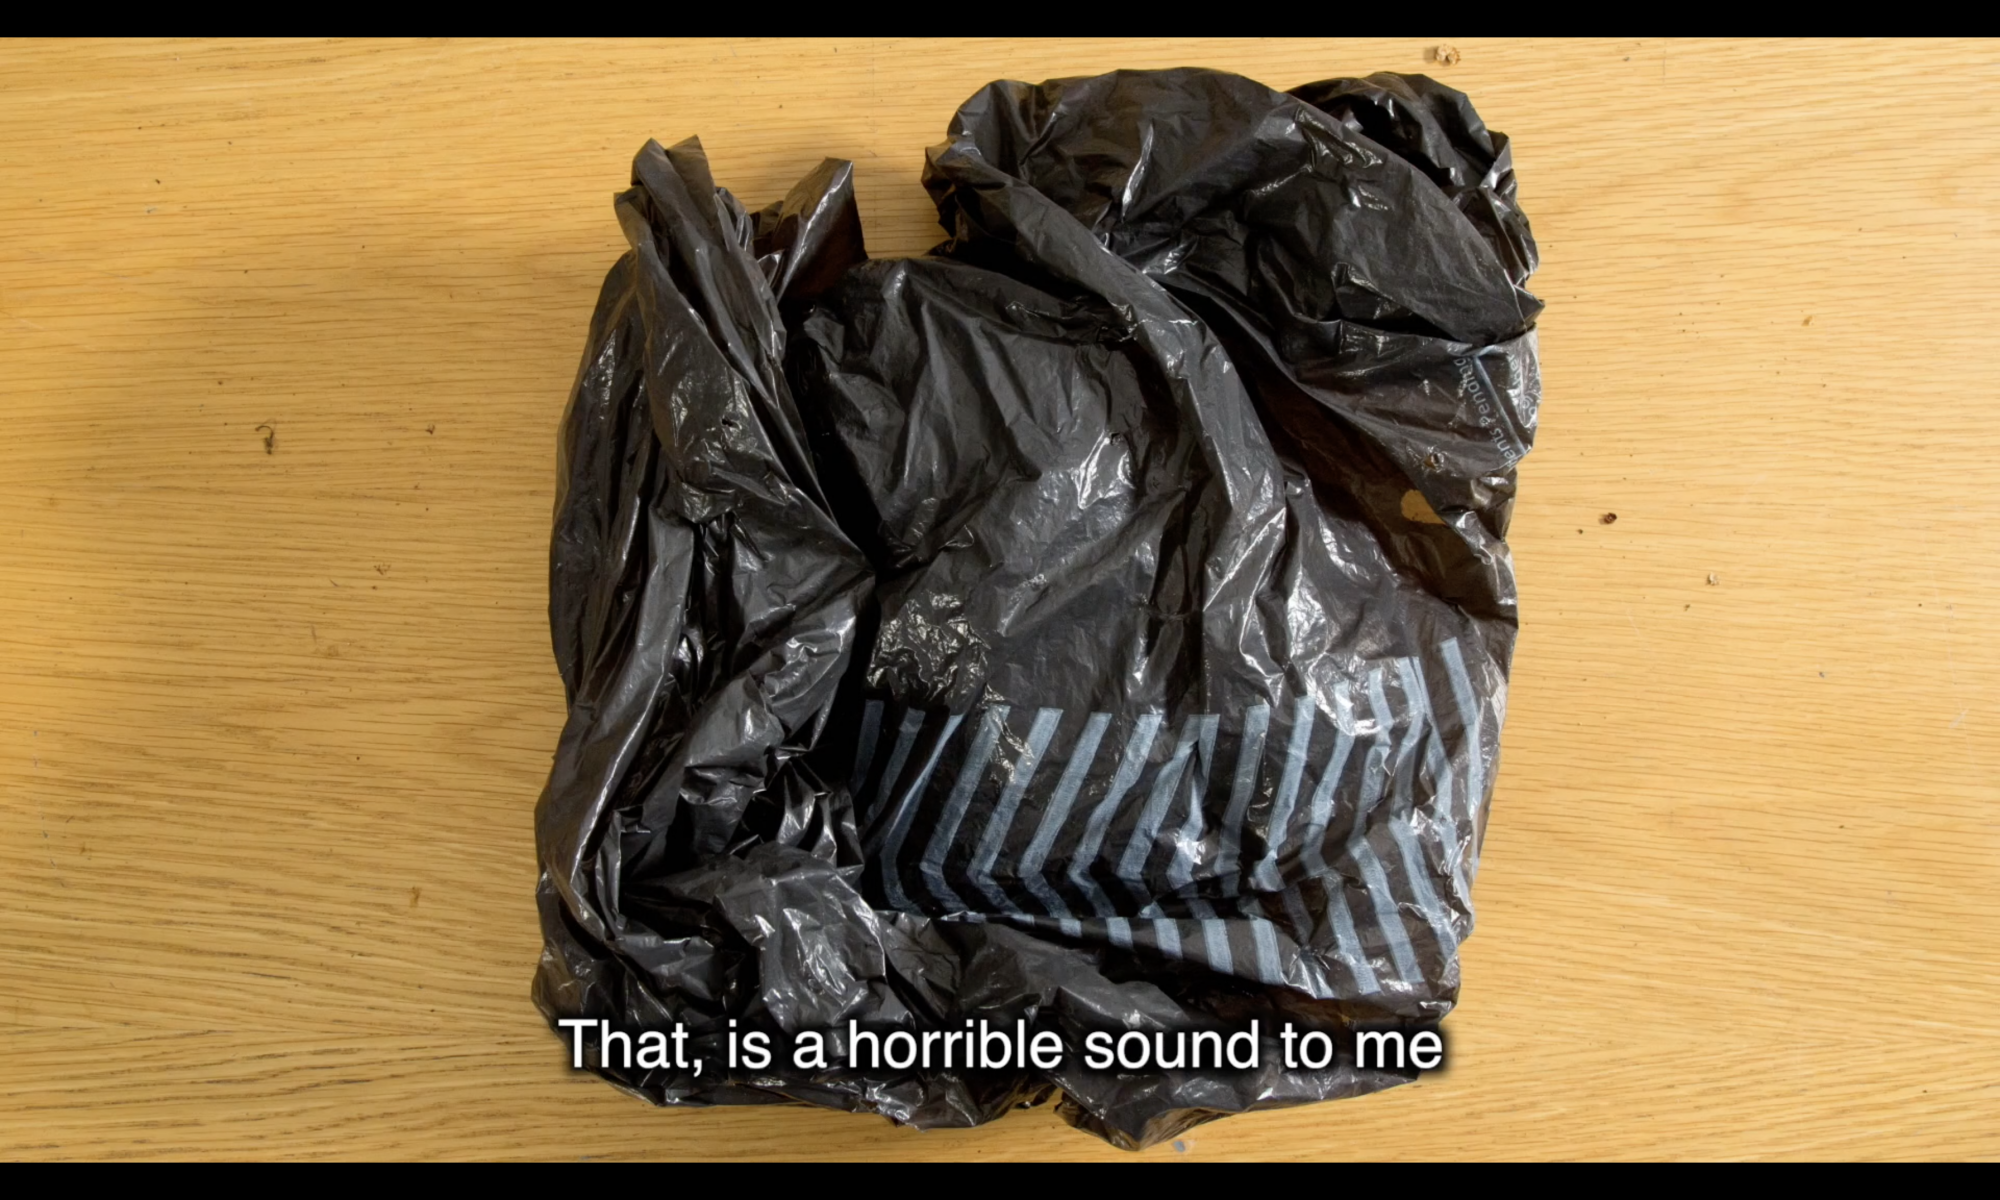 Image of plastic bag with caption